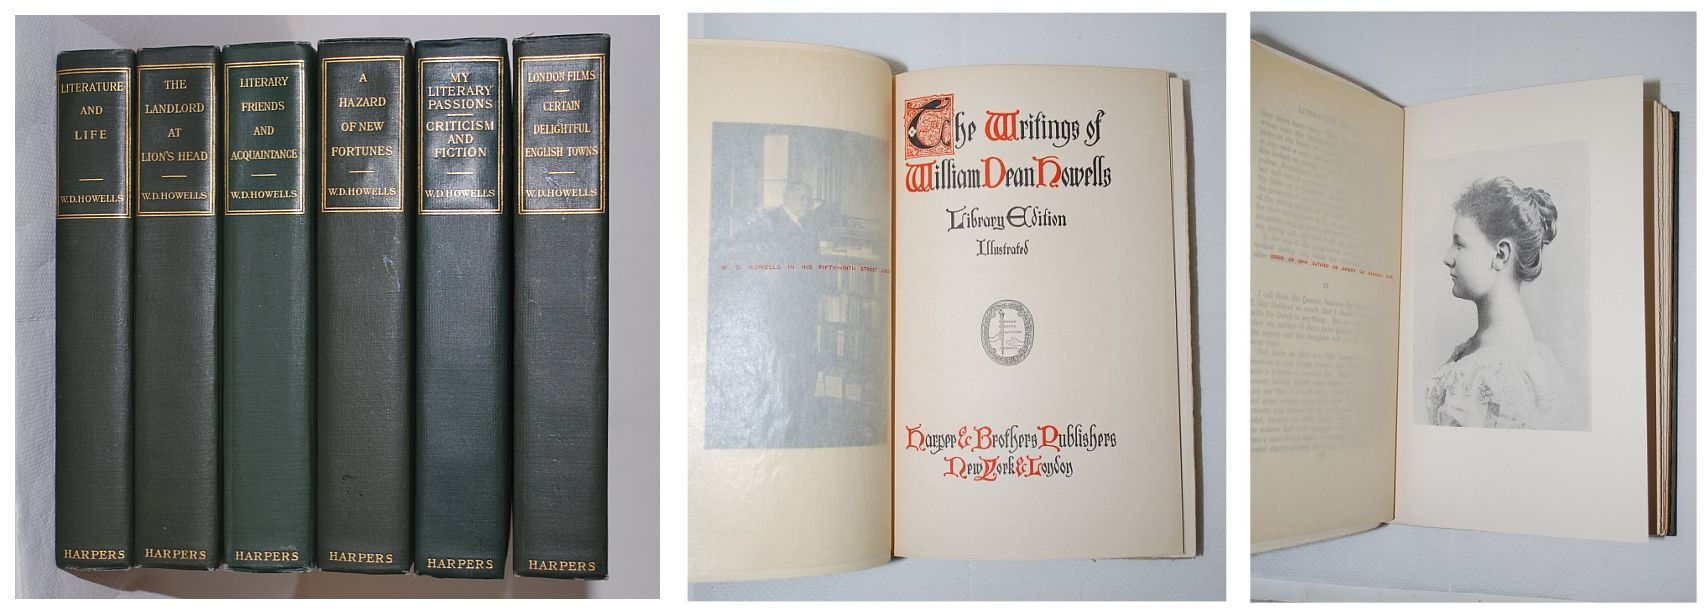 Image for The Writings of William Dean Howells, Library Edition Illustrated, 6 Volume Set